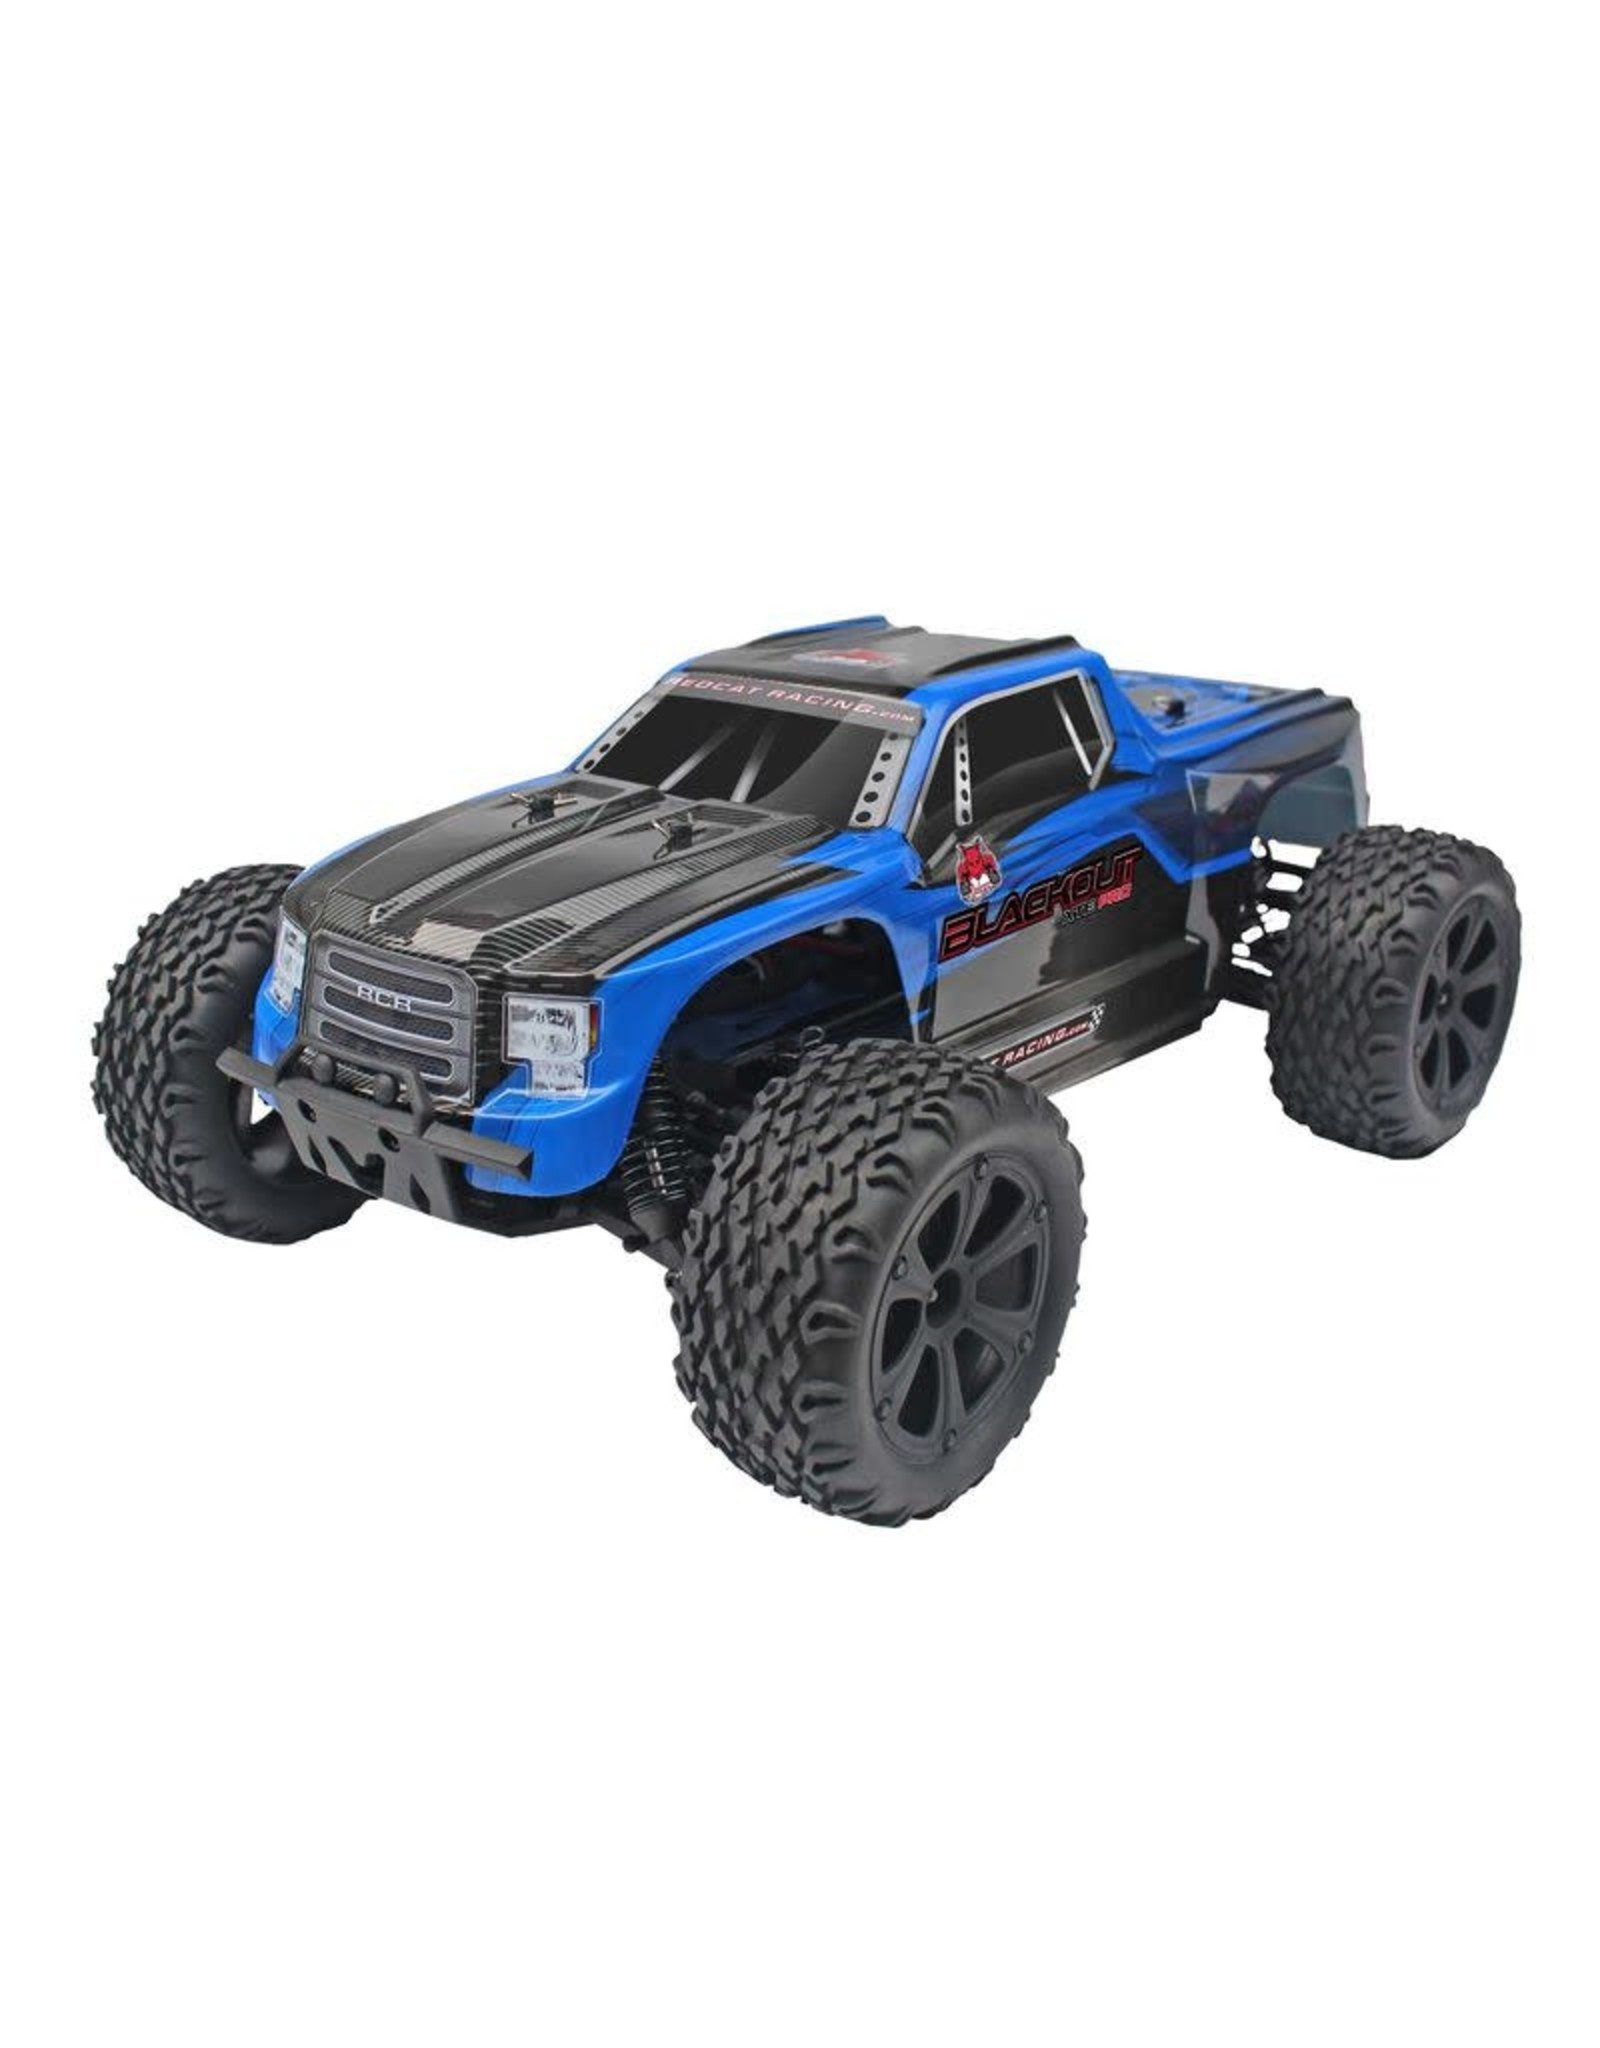 Redcat Racing Blackout XTE PRO Brushless 1/10 Monster truck 4WD Blue